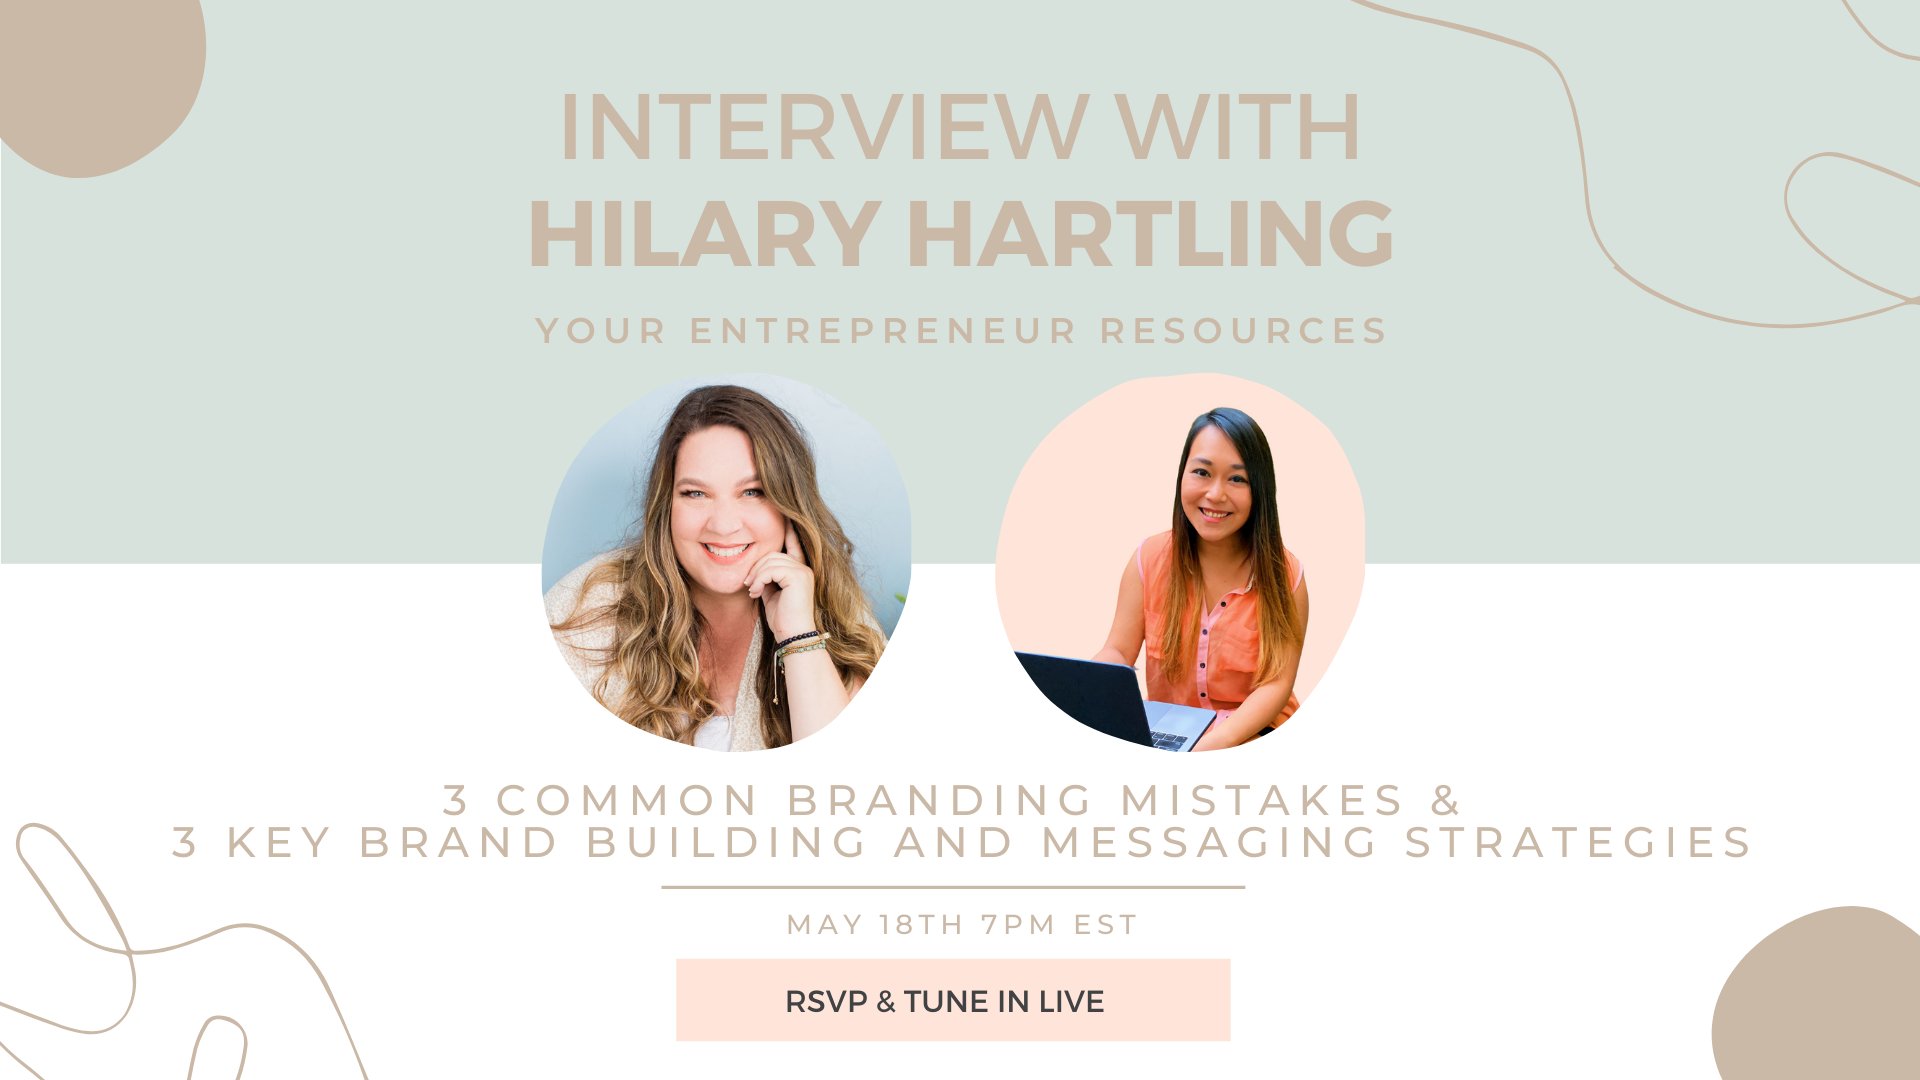 3 common branding mistakes & 3 key brand building and messaging strategies with Hilary Hartling